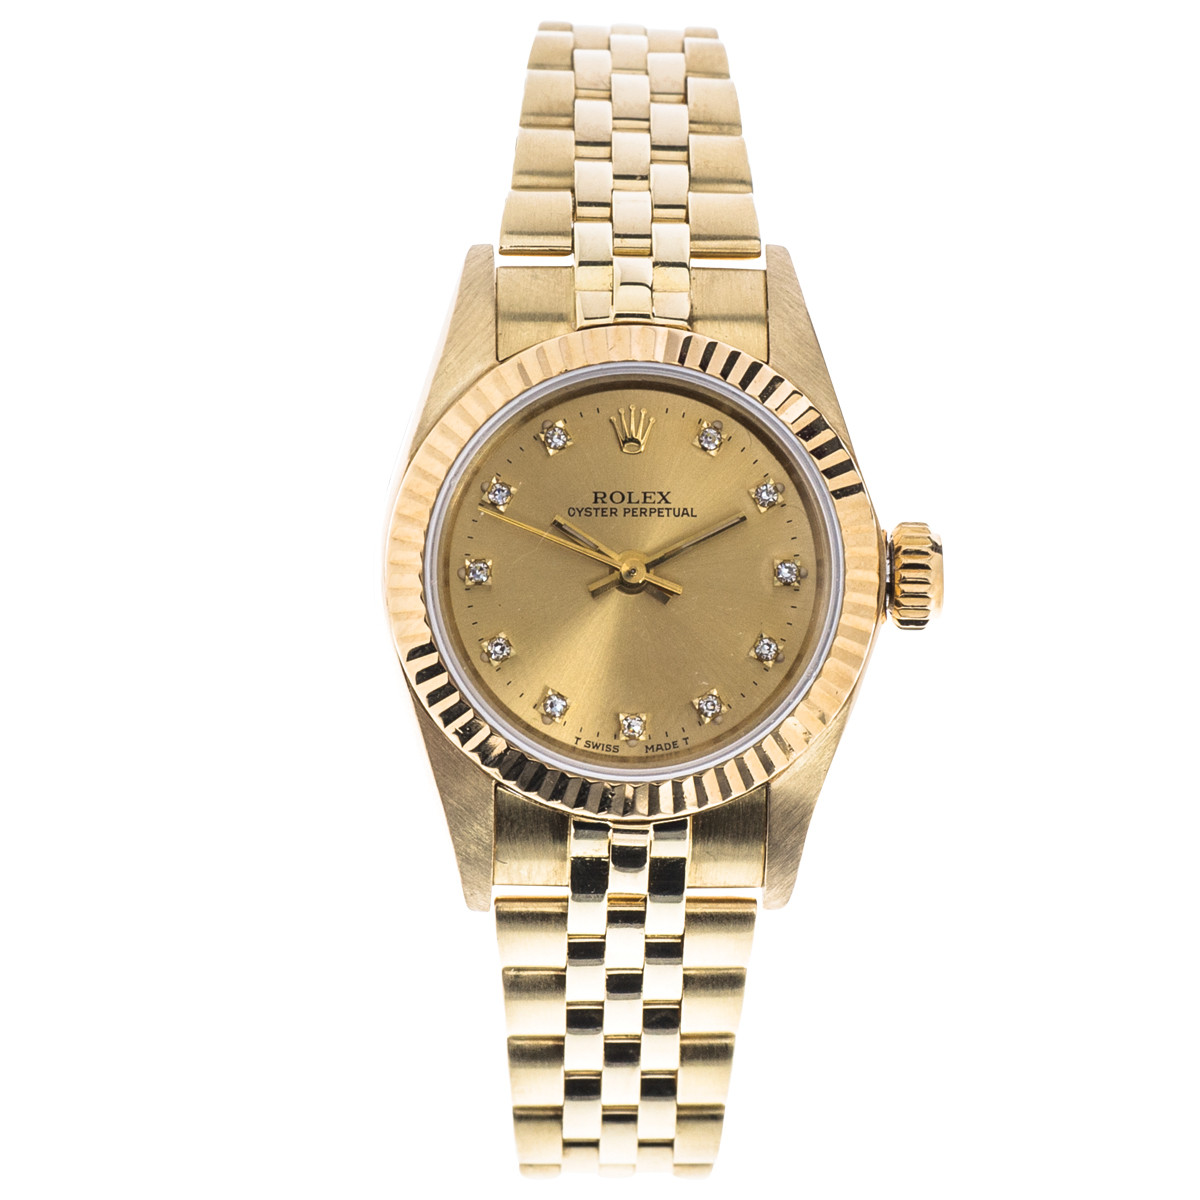 Preowned Rolex Oyster Perpetual with Jubilee Bracelet